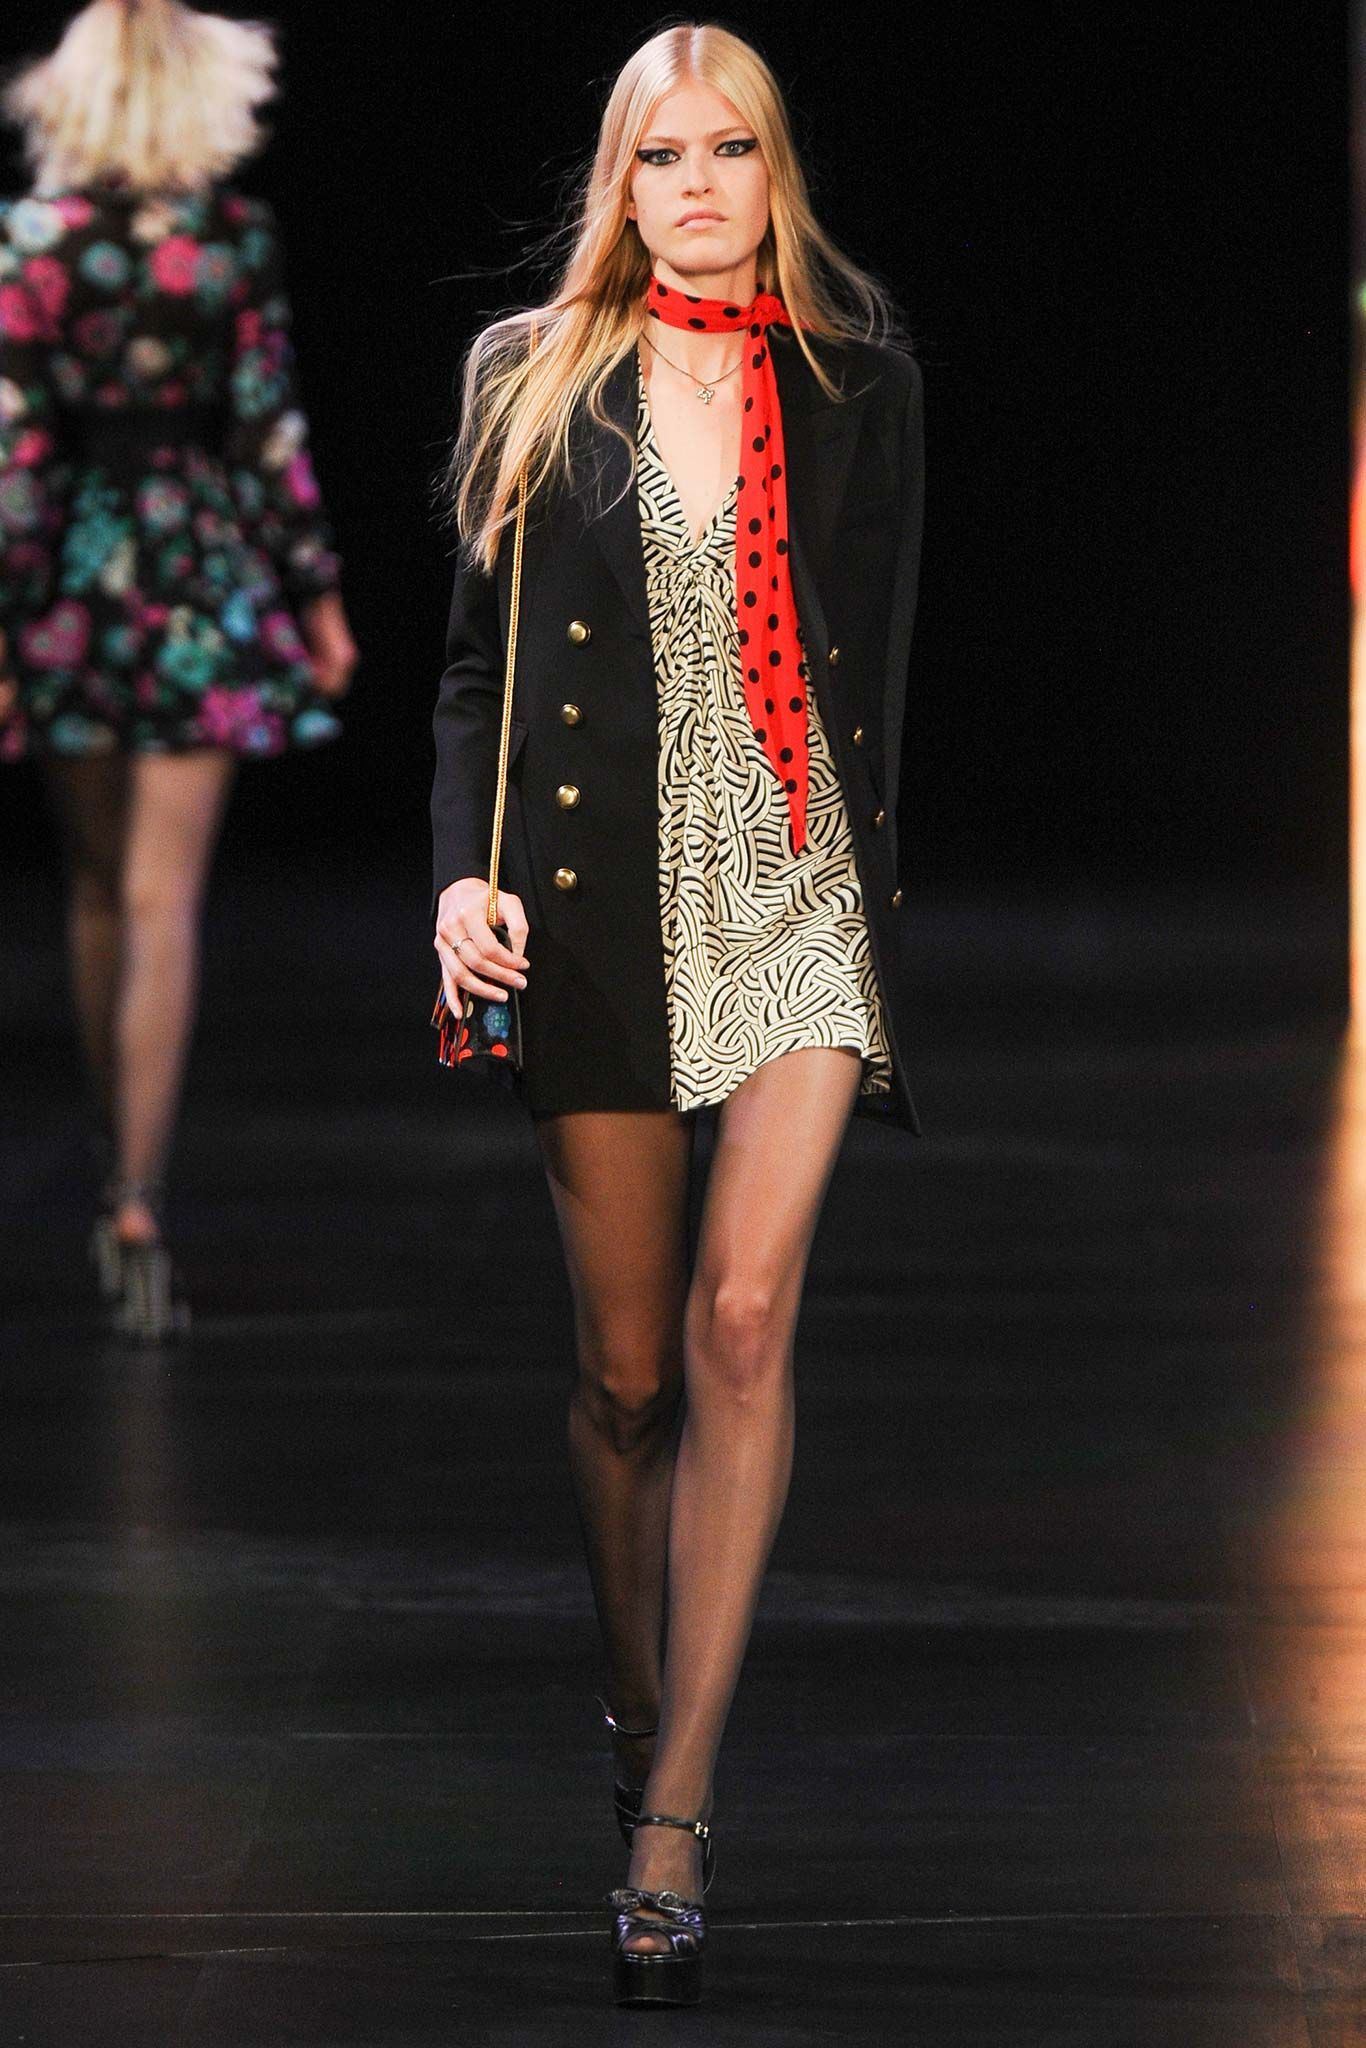 Saint Laurent Spring 2015 RTW | Seriously everyone is doing 60s and it reminds me of a certain movie as of late!